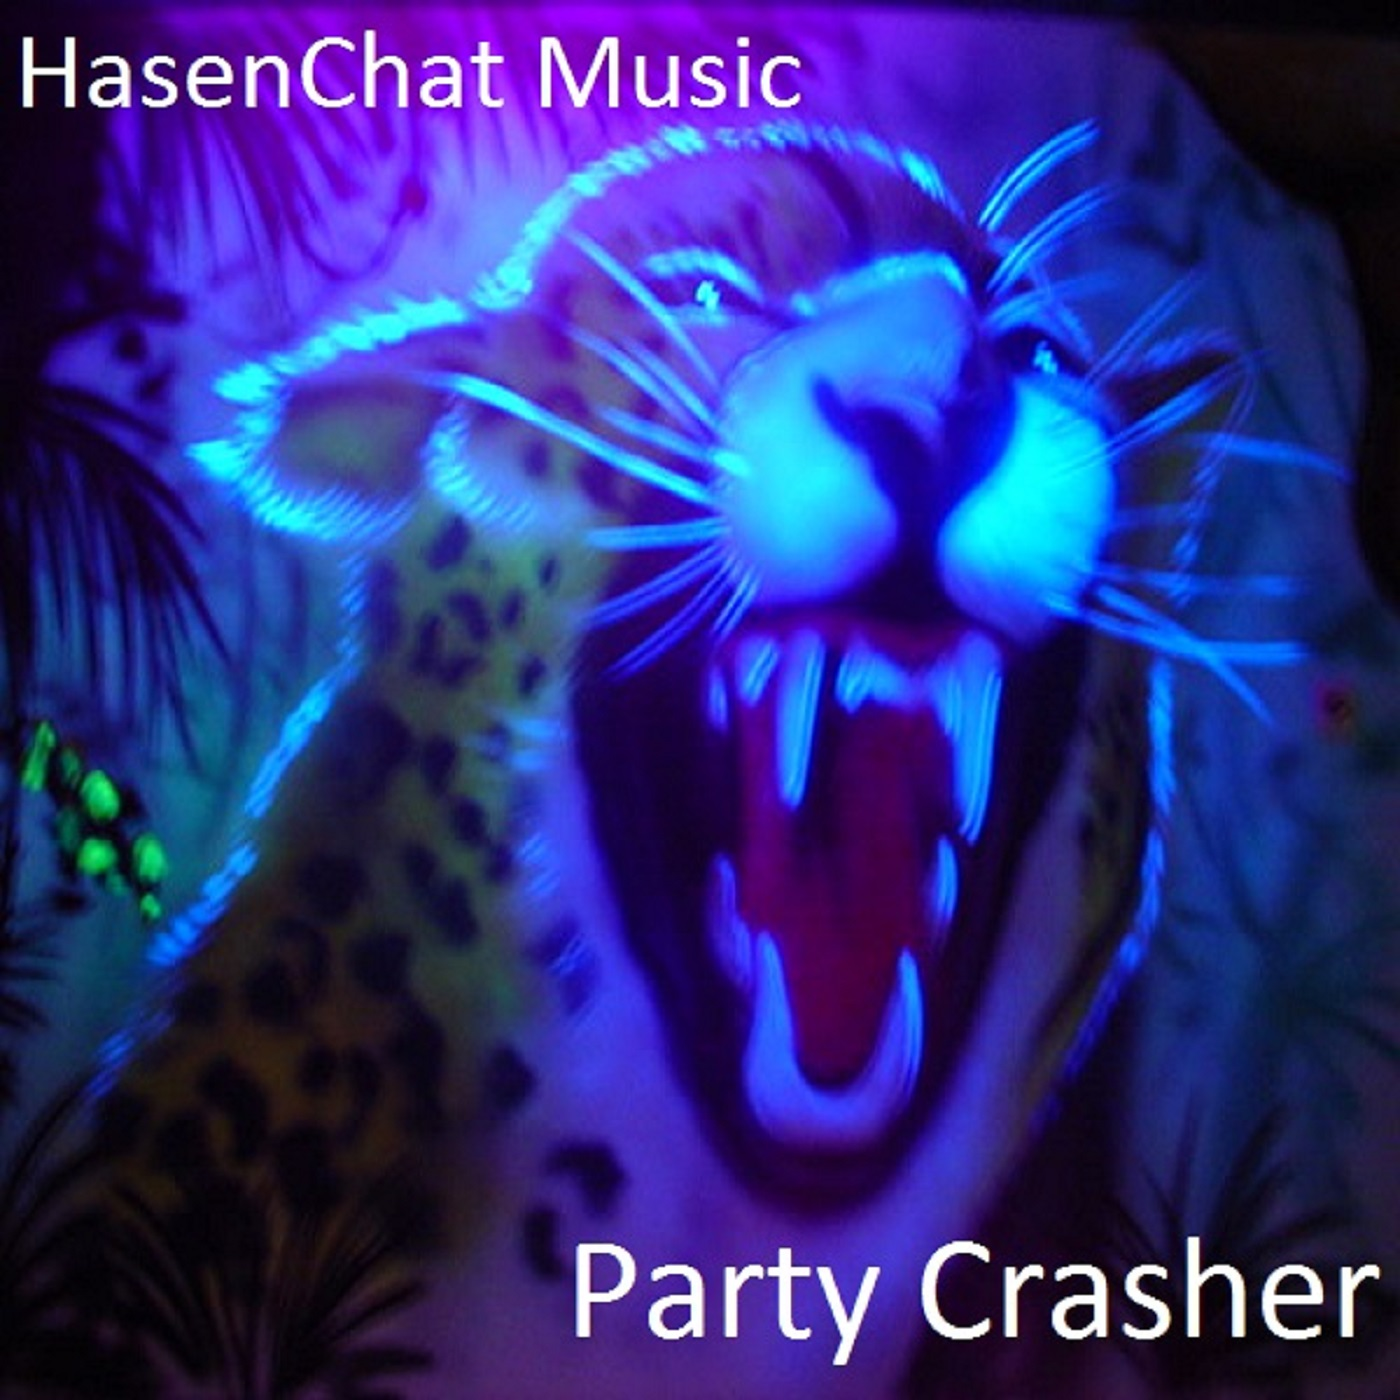 HasenChat Music - Party Crasher